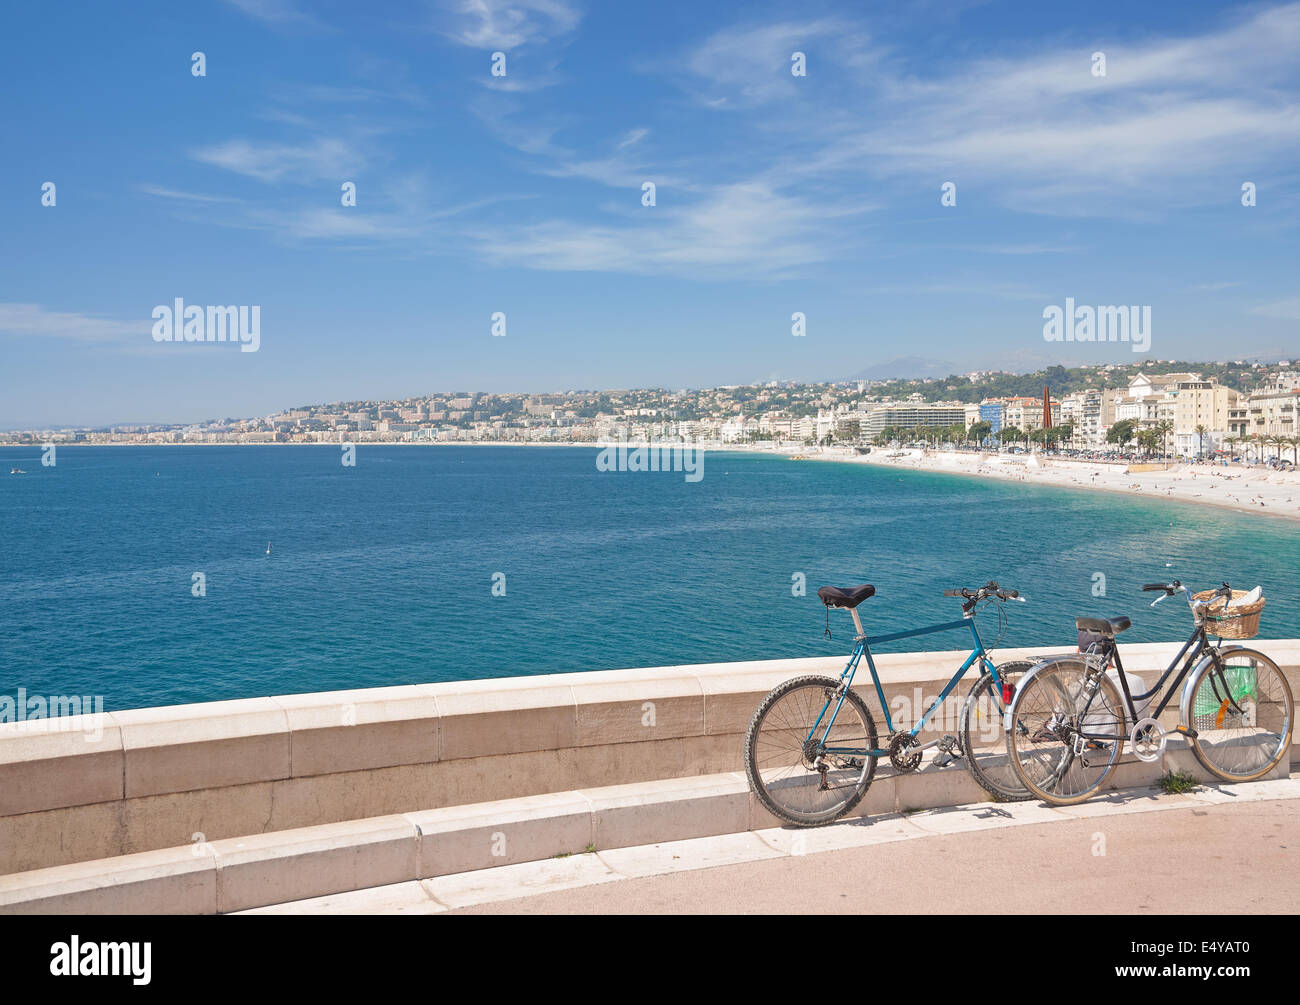 Nizza,french Riviera,South of France - Stock Image